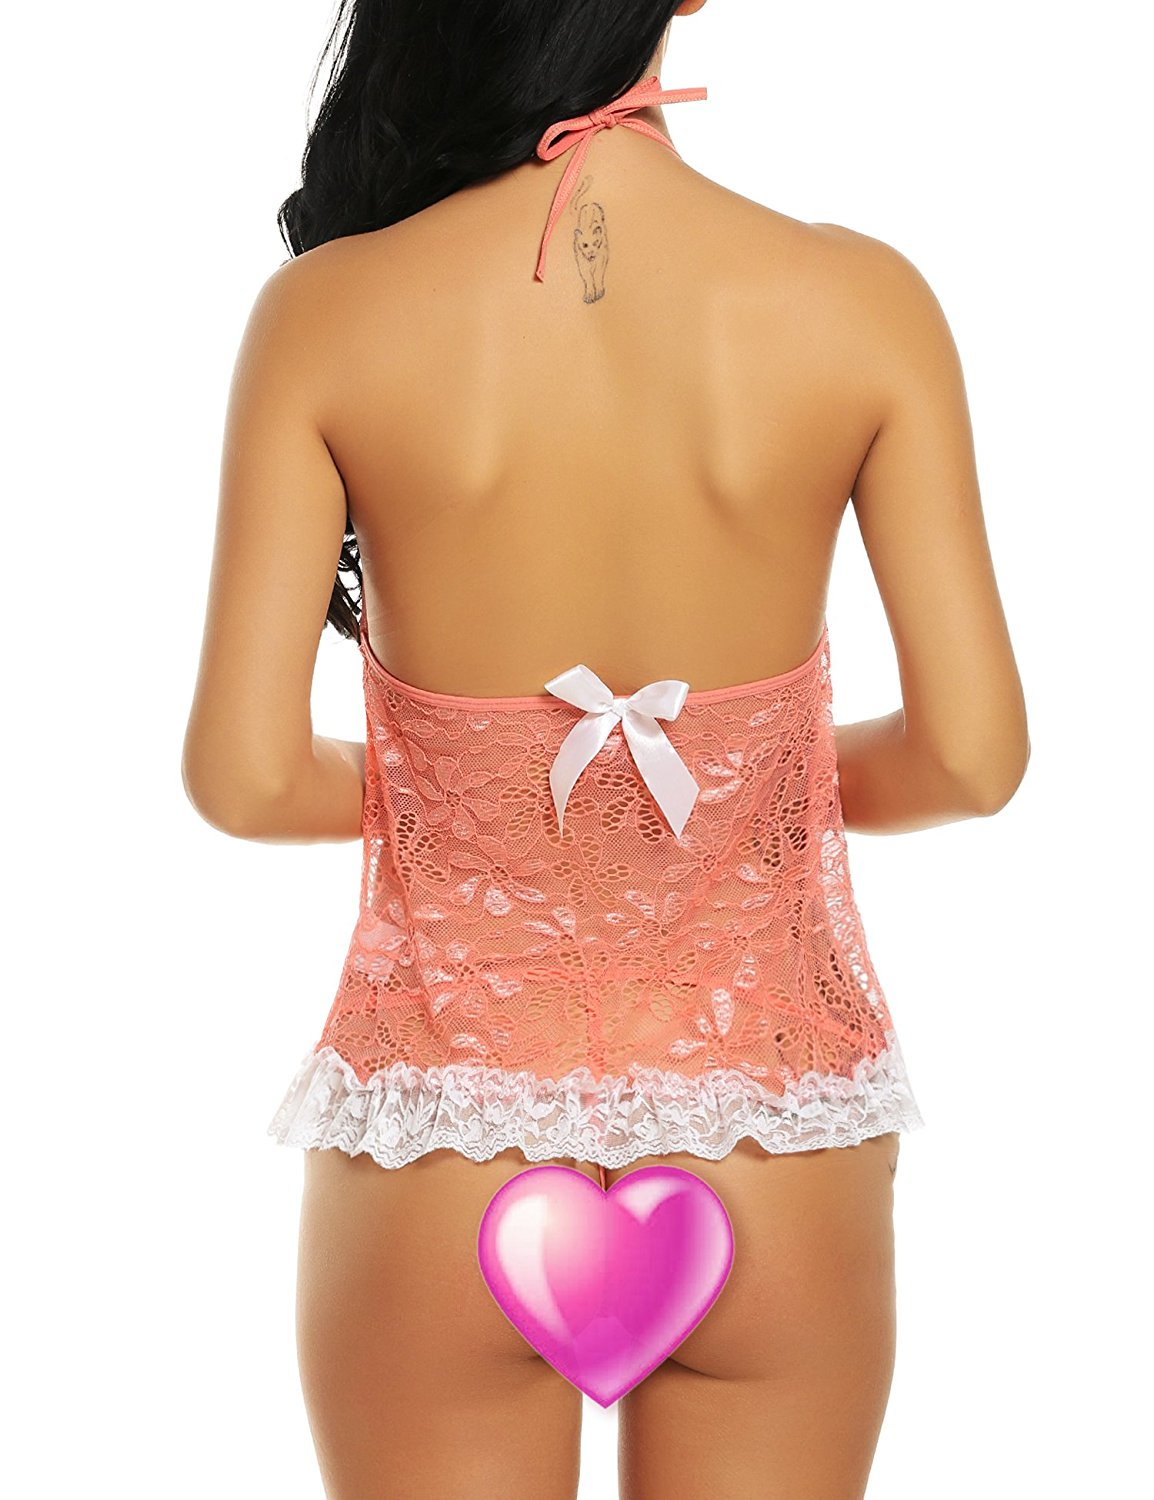 Avidlove Women's Sexy Lingerie Lcae Babydolls 2 Pieces Mesh Chemises With G-String